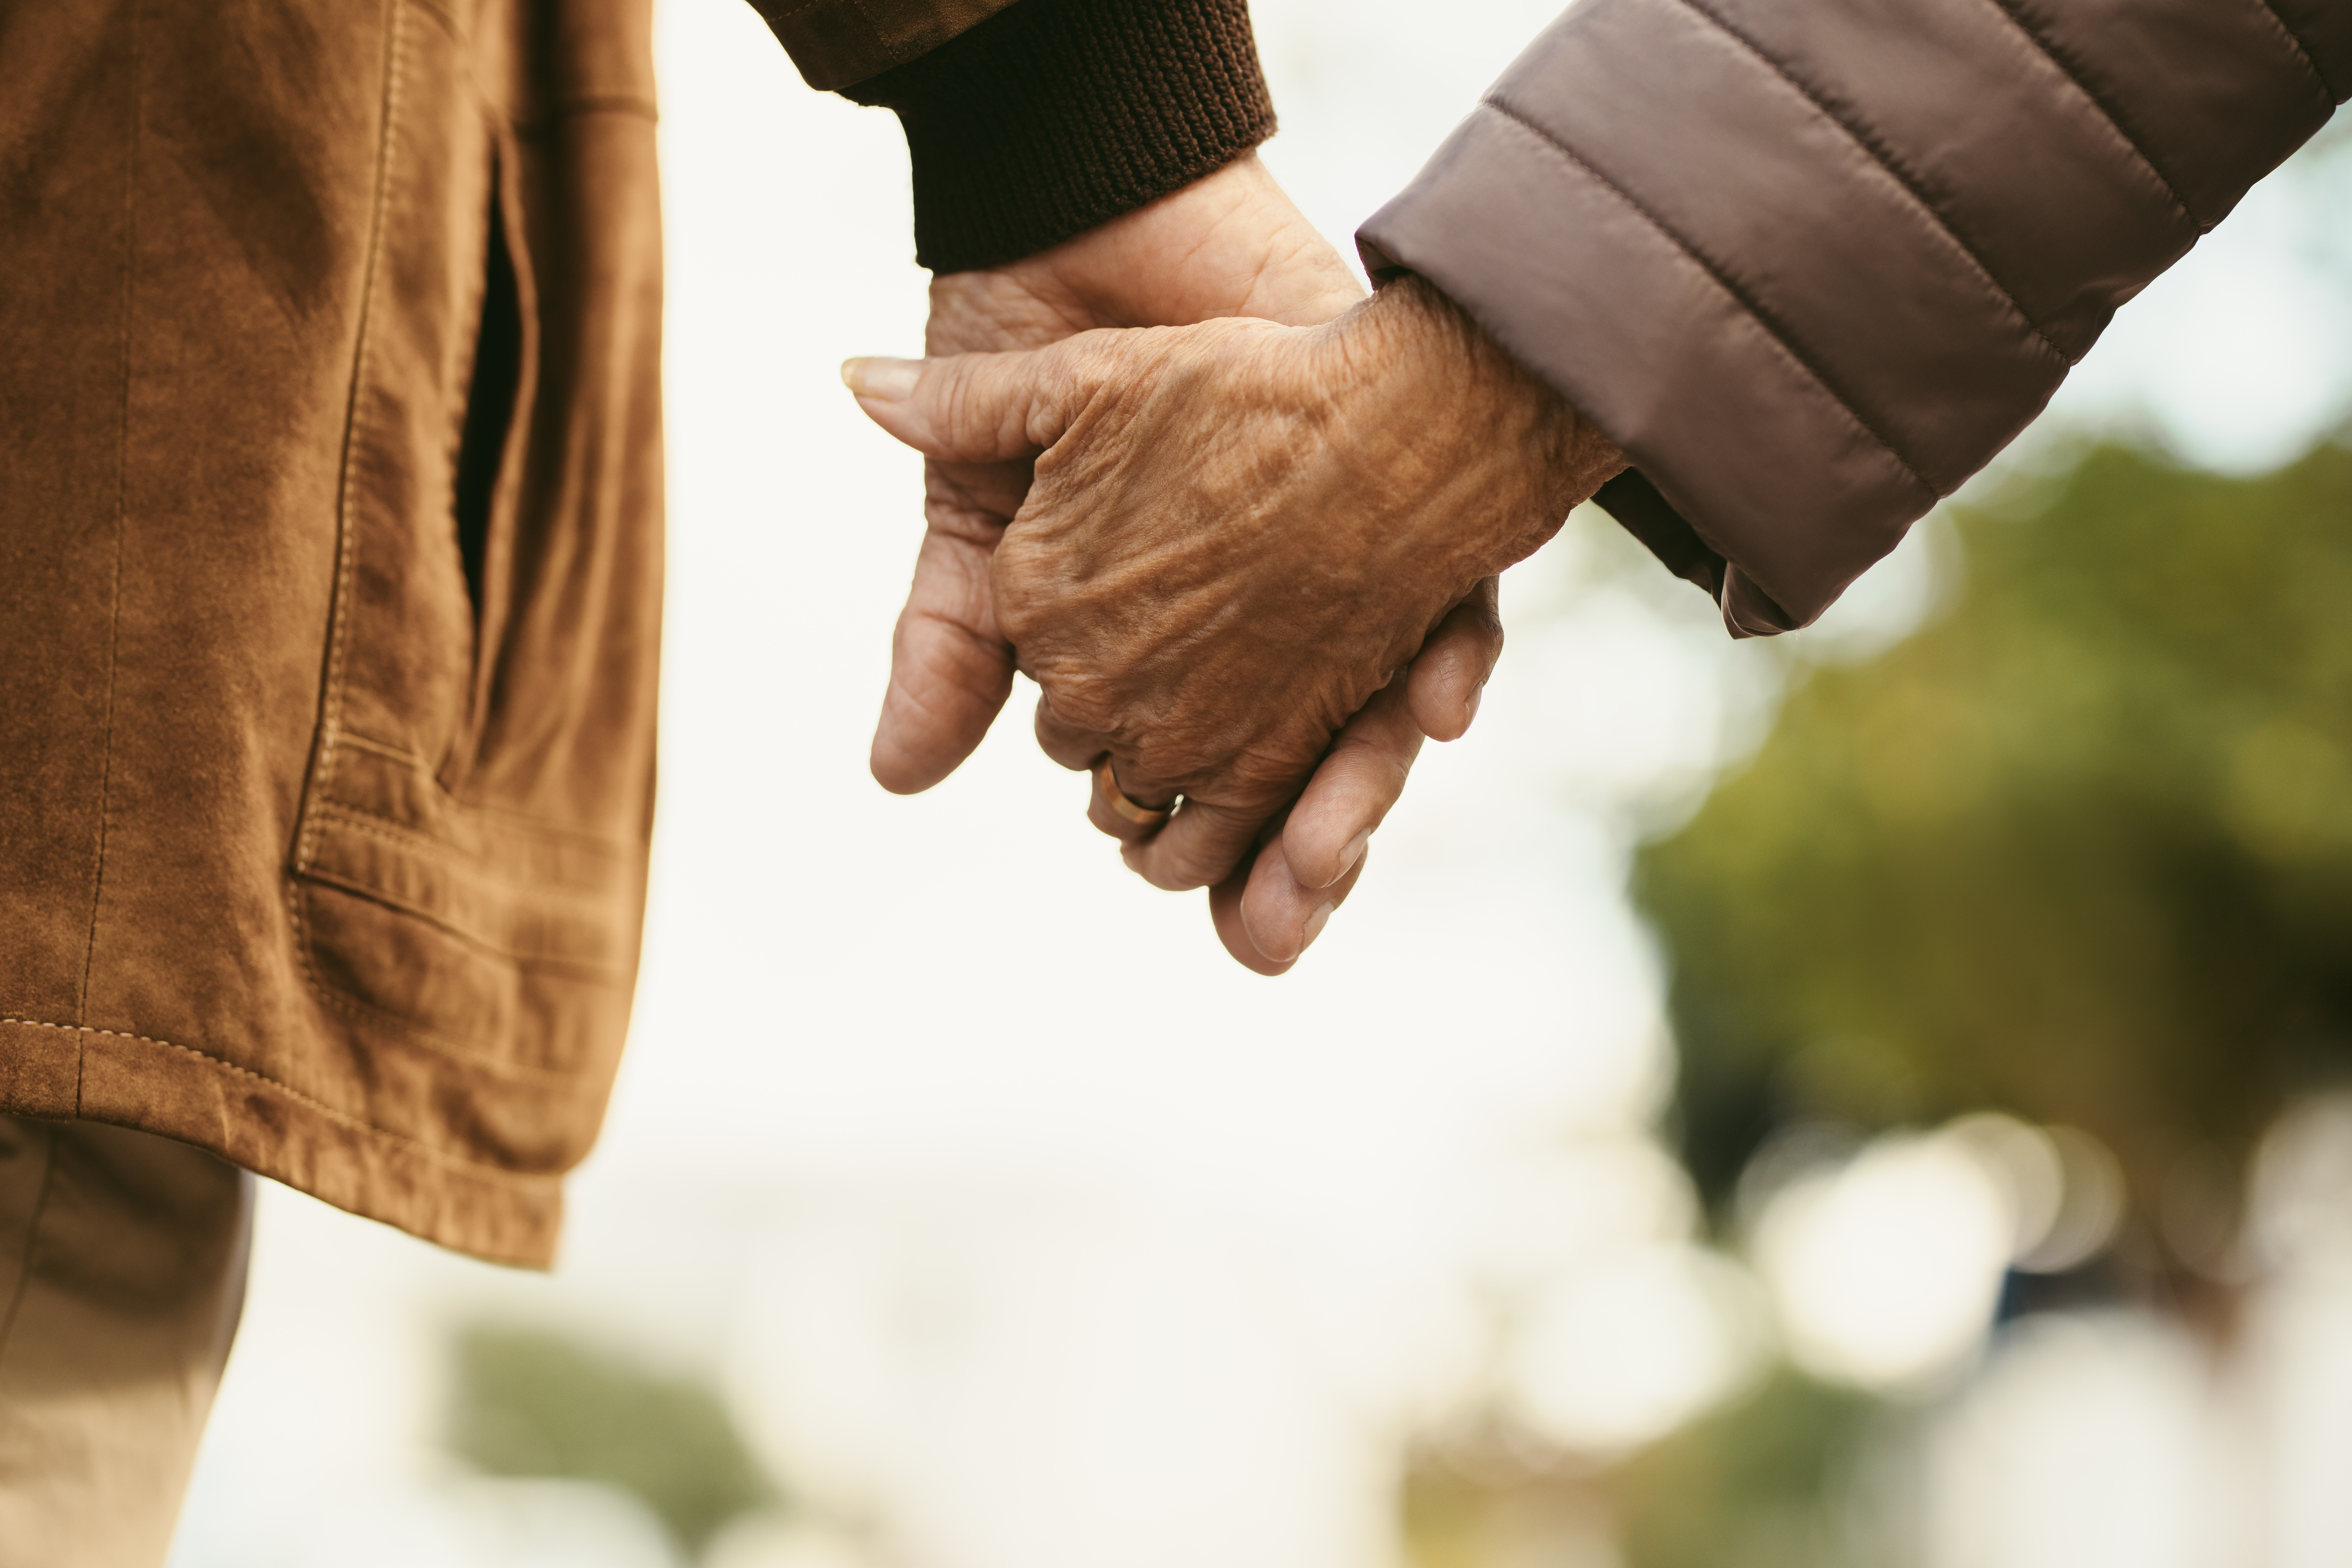 Old couple holding hands | Source: Shutterstock